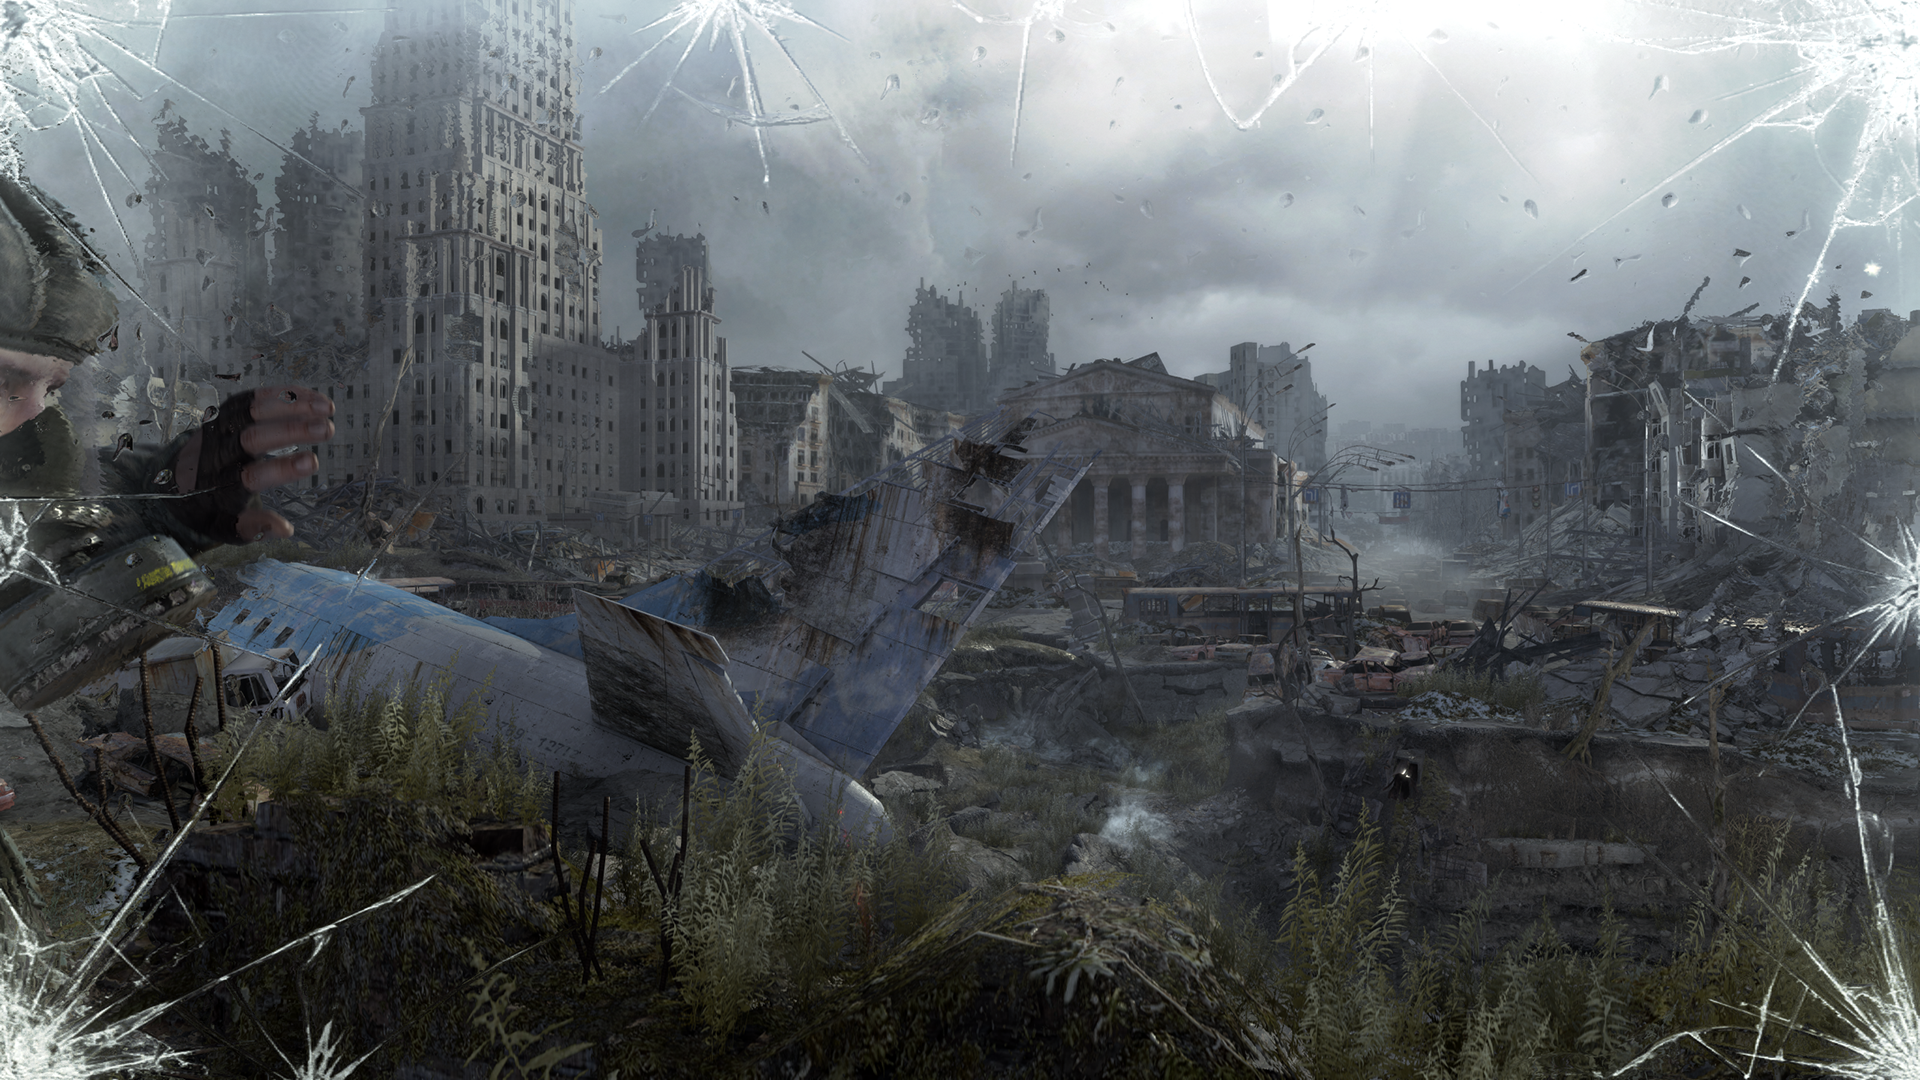 Metal Gear Solid Wallpaper 1080p Metro: Last Light Grap...